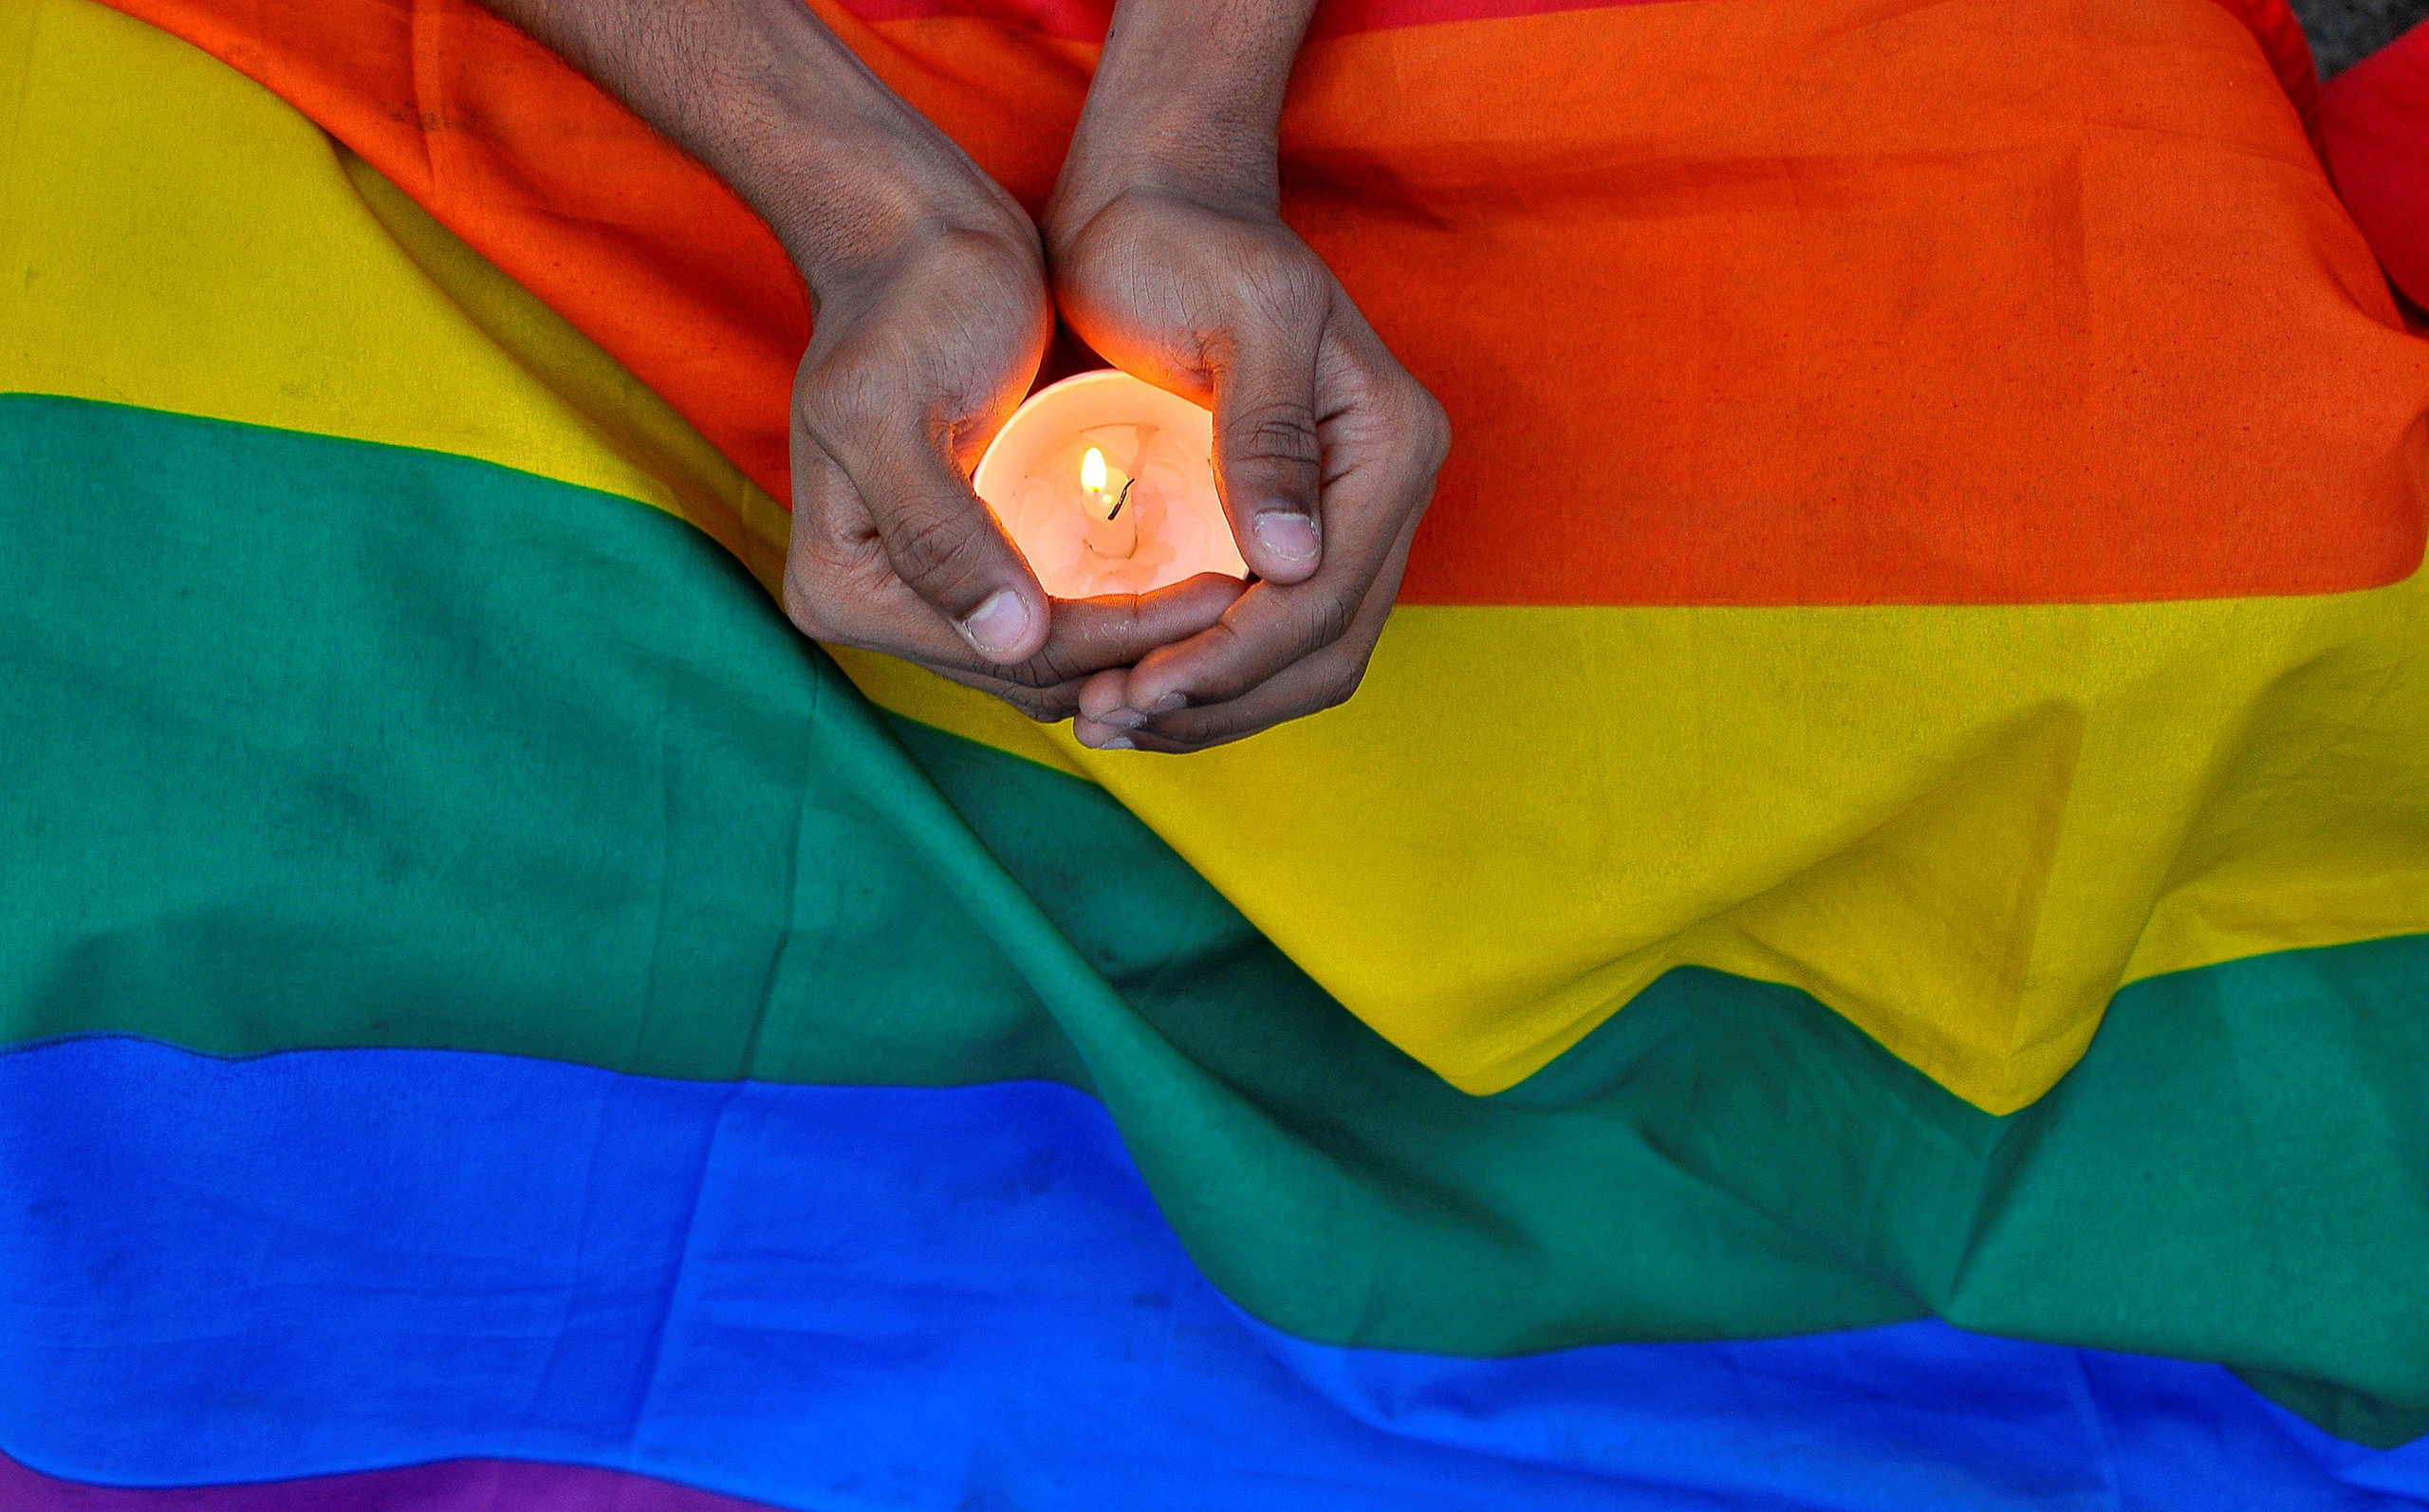 A member of the LGBT community in Bengalaru holds a candle during a memorial service following a mass shooting at the Pulse gay nightclub in Orlando, in India June 14, 2016.